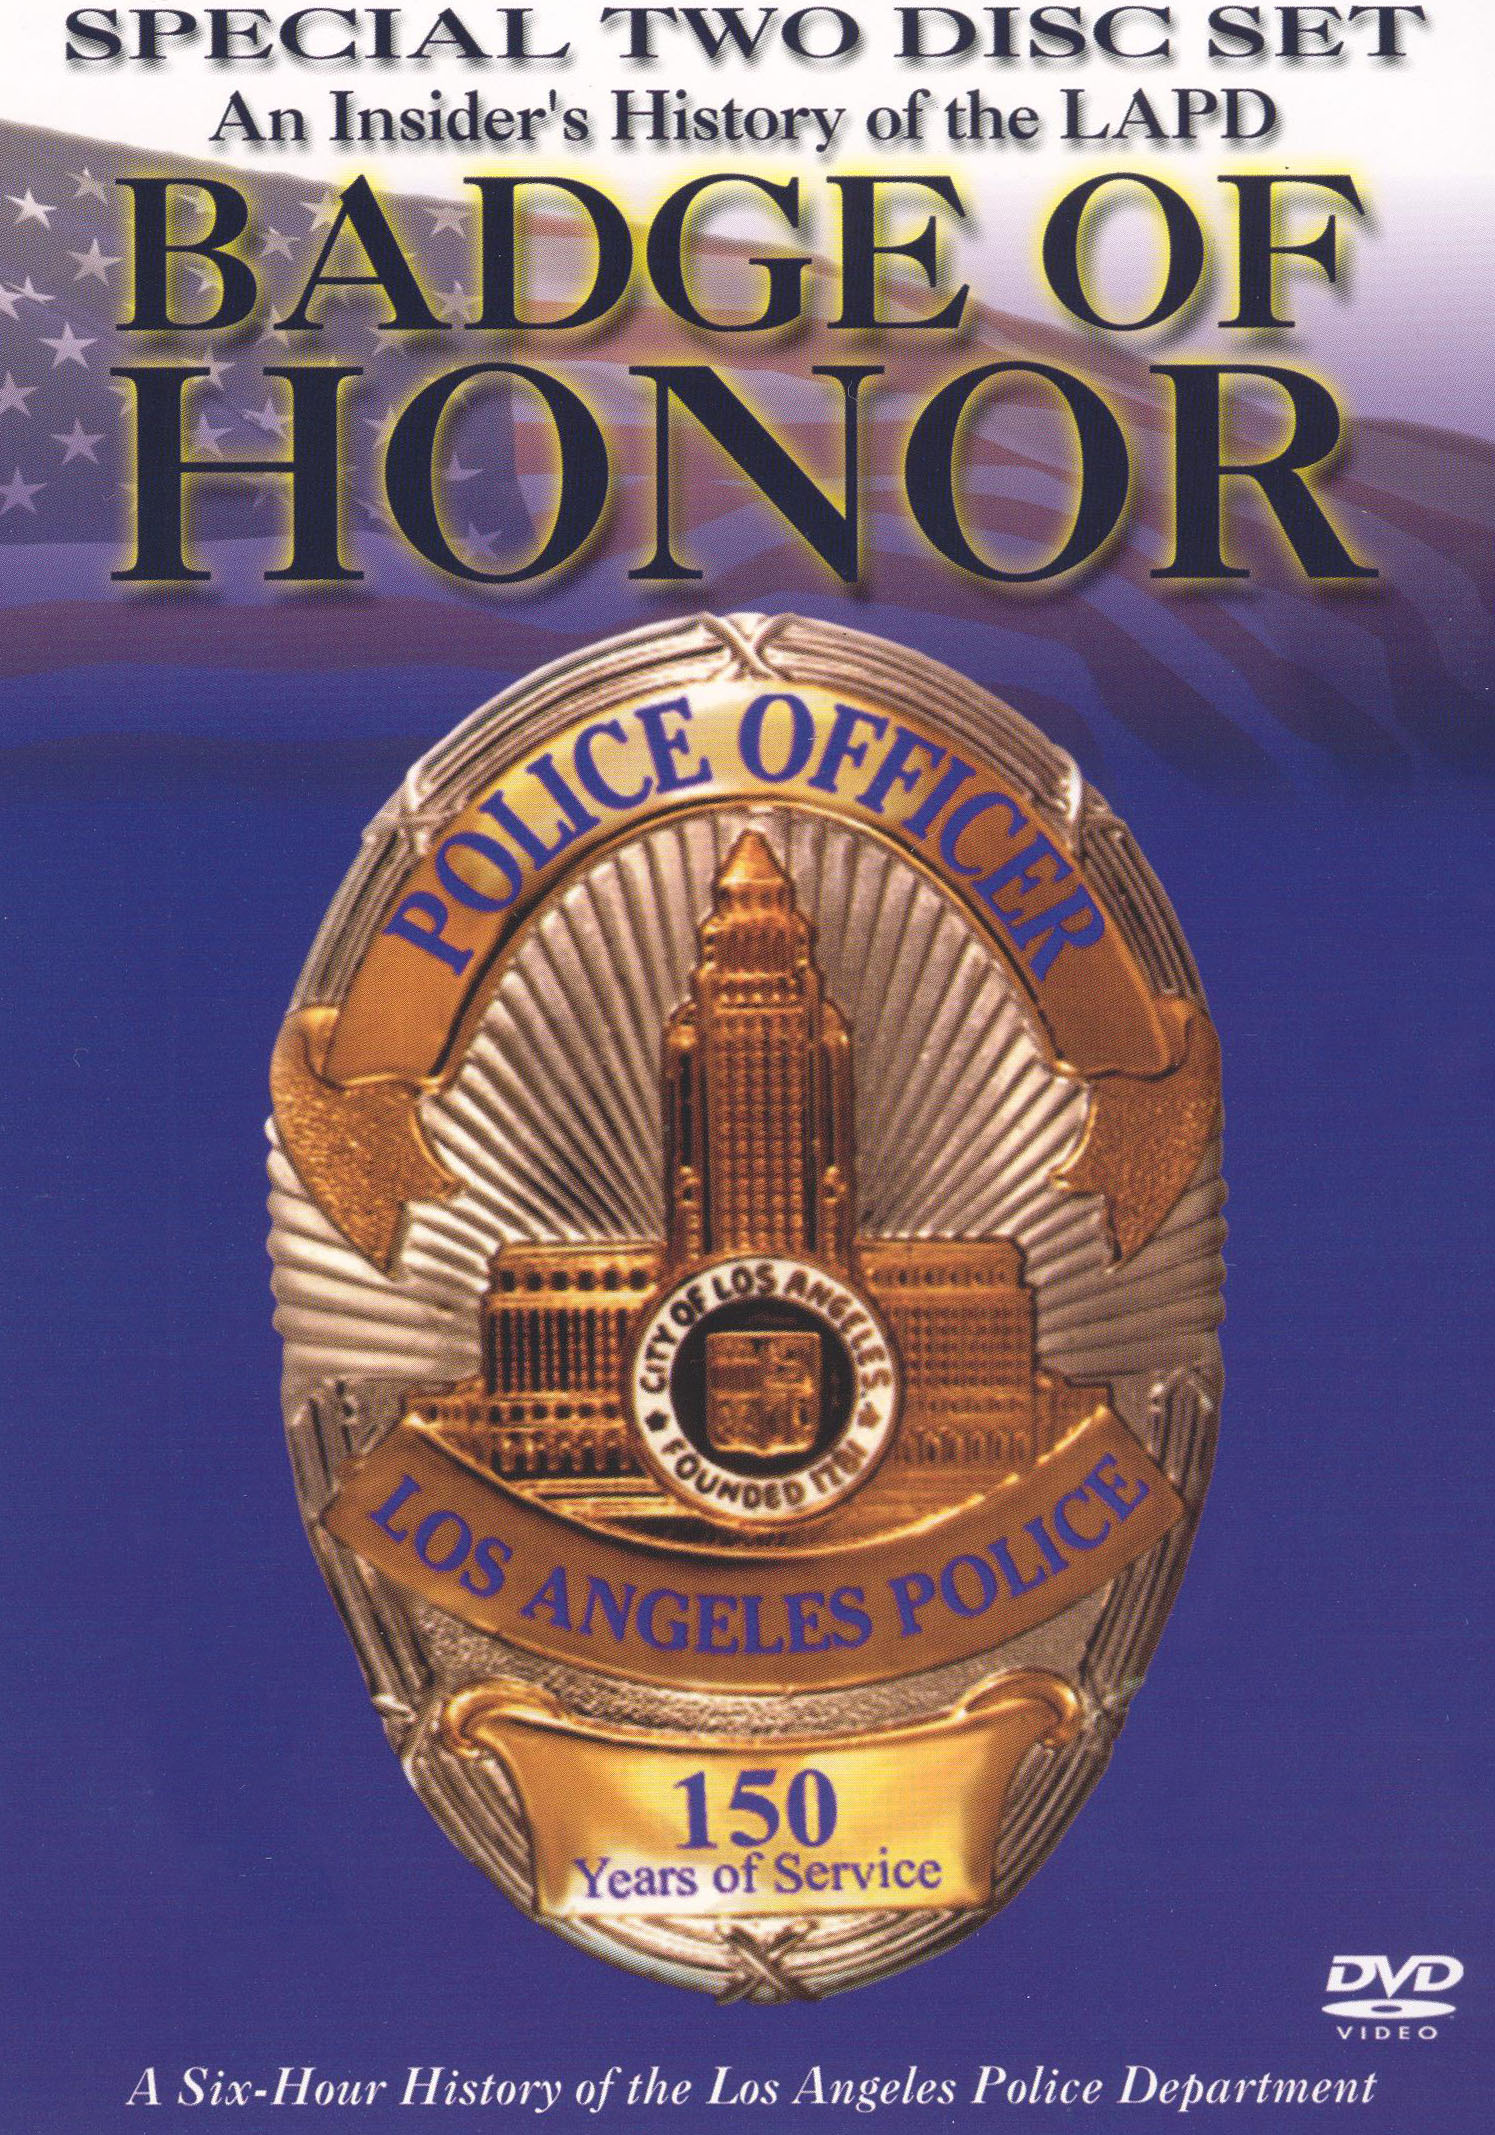 Badge of Honor: An Insider's History of the L.A.P.D.